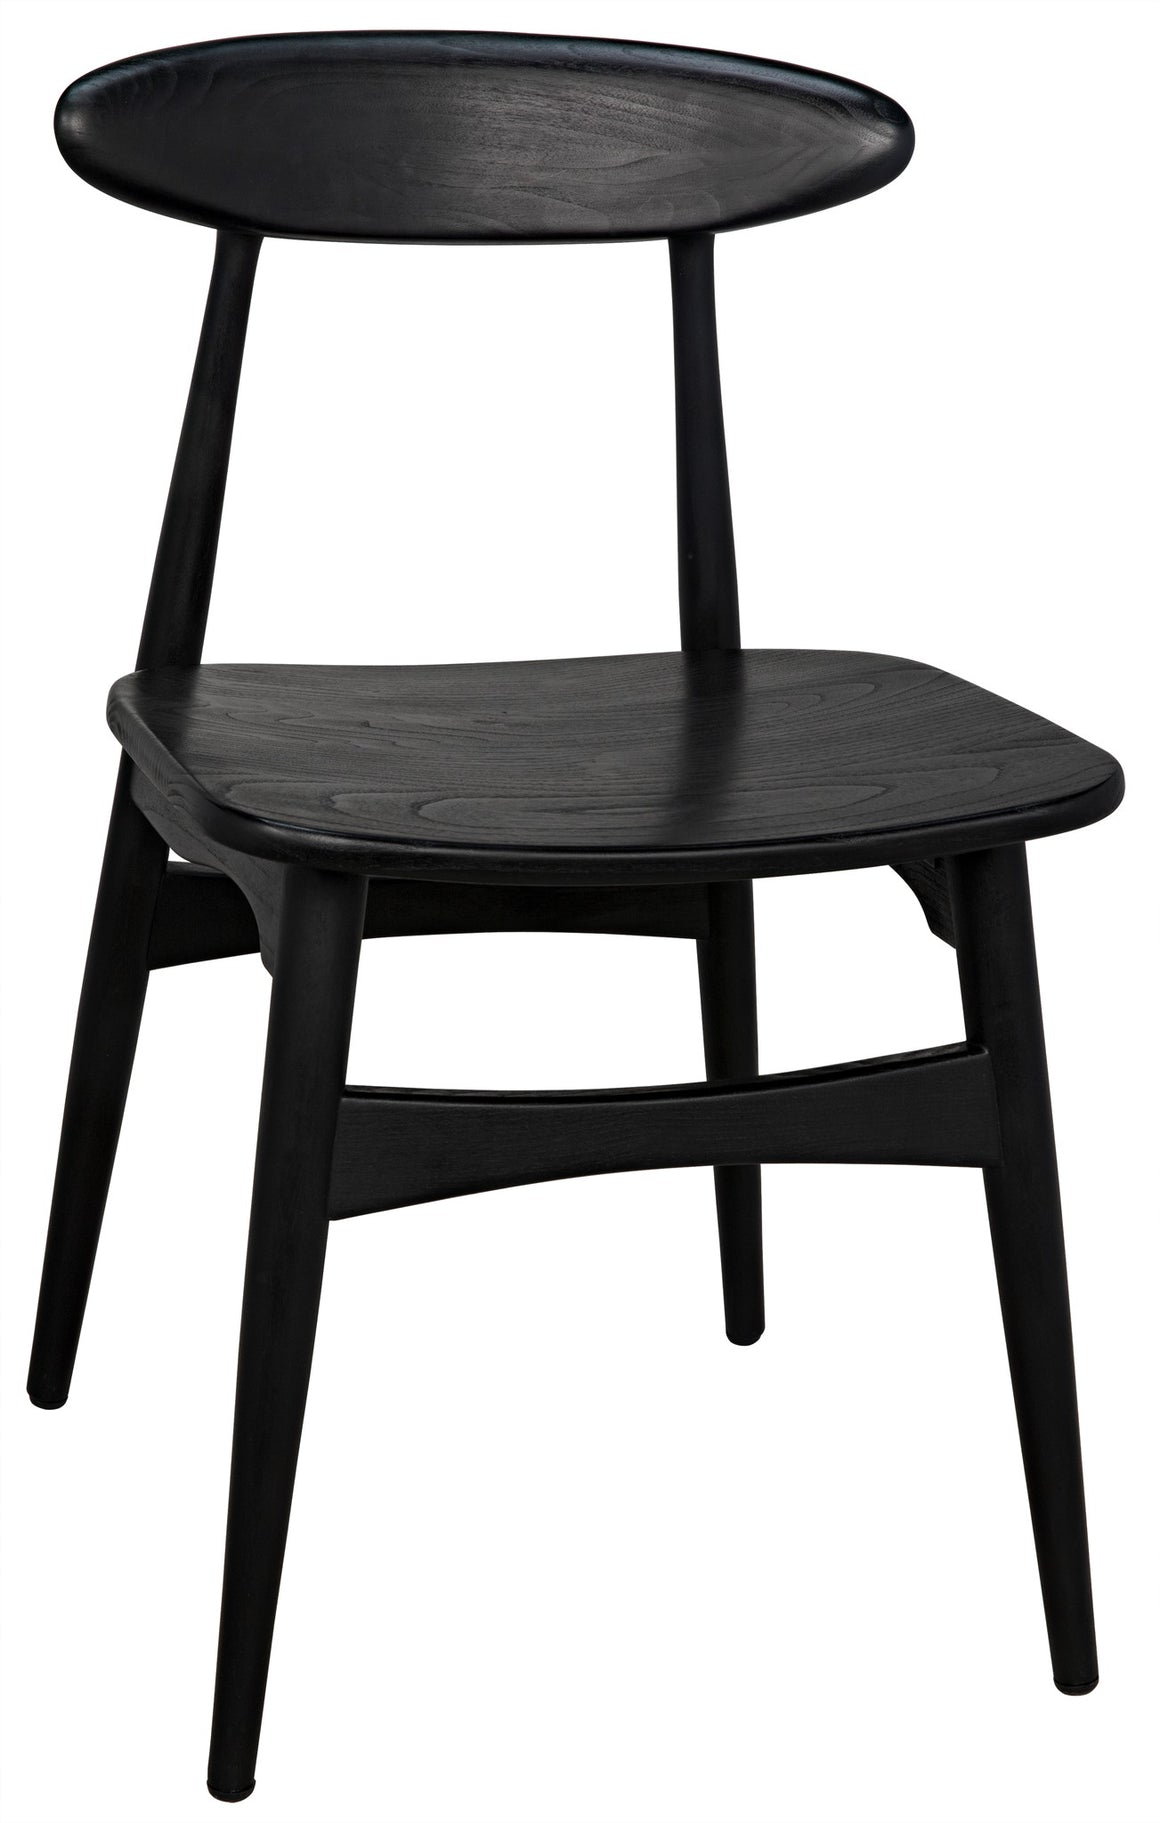 Noir Surf Chair - Charcoal Black